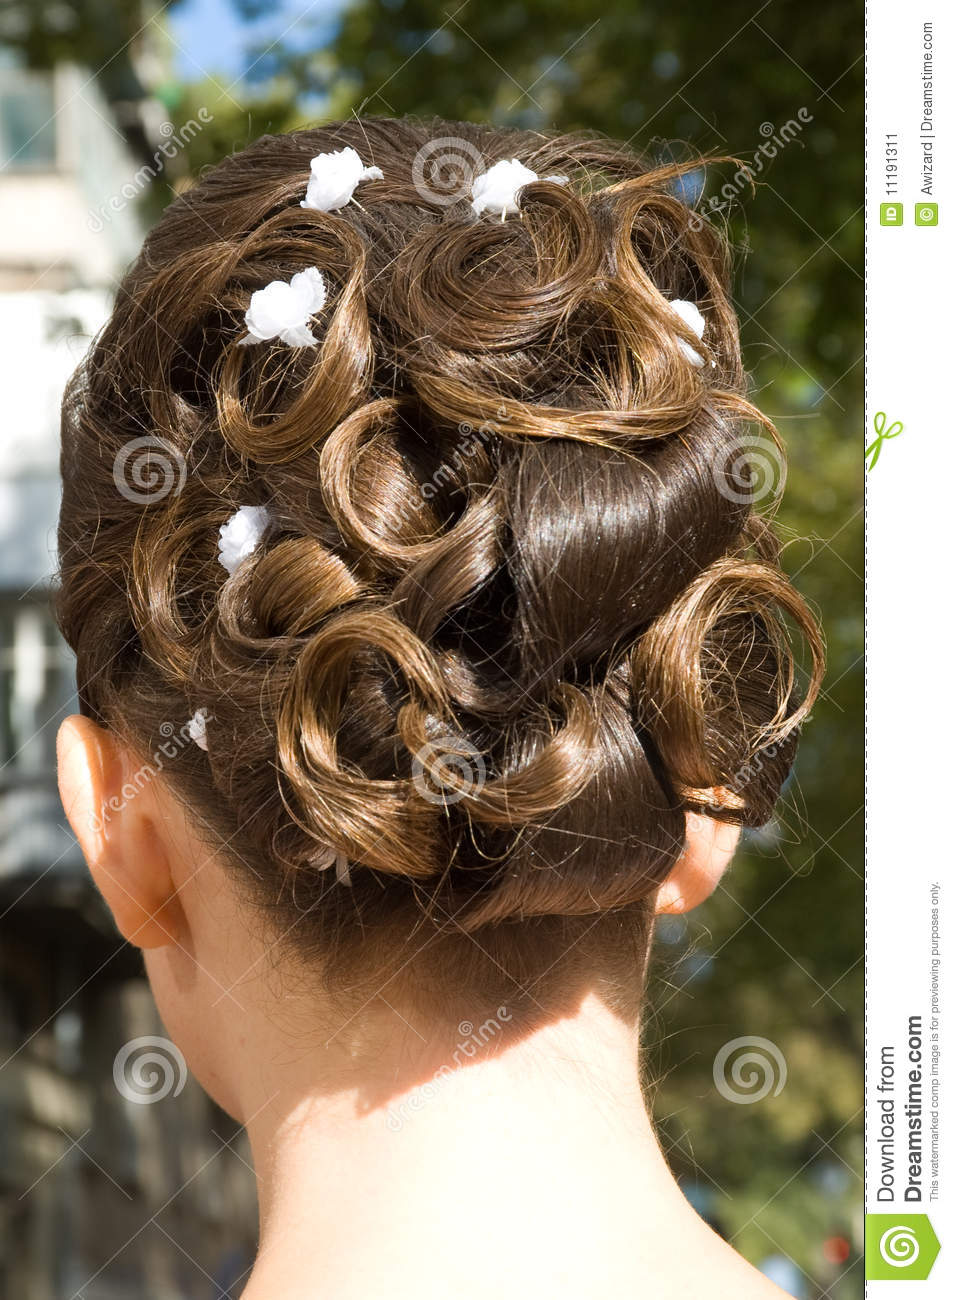 Wedding Hair Style Stock Image Image Of Preparations